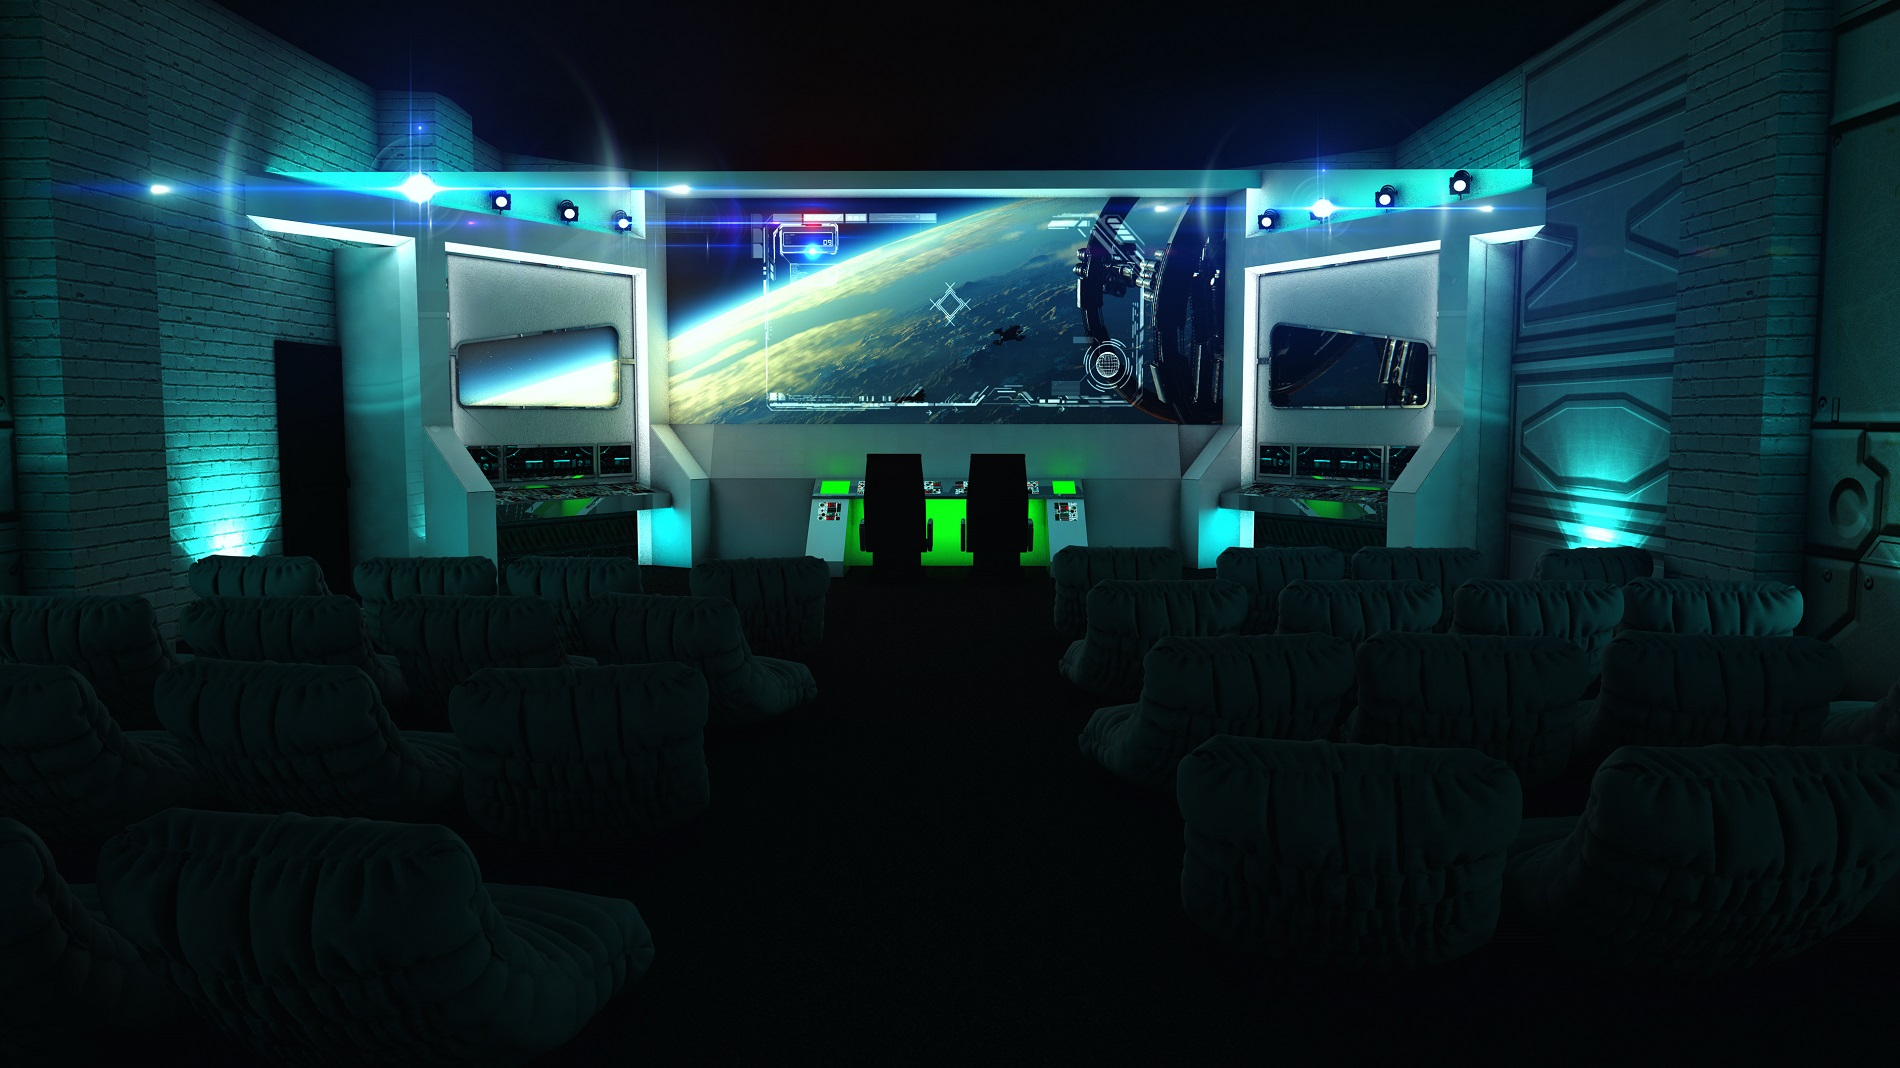 Backyard Cinema: Mission To Mars: Travel to another galaxy to watch your fave sci-fi film ...